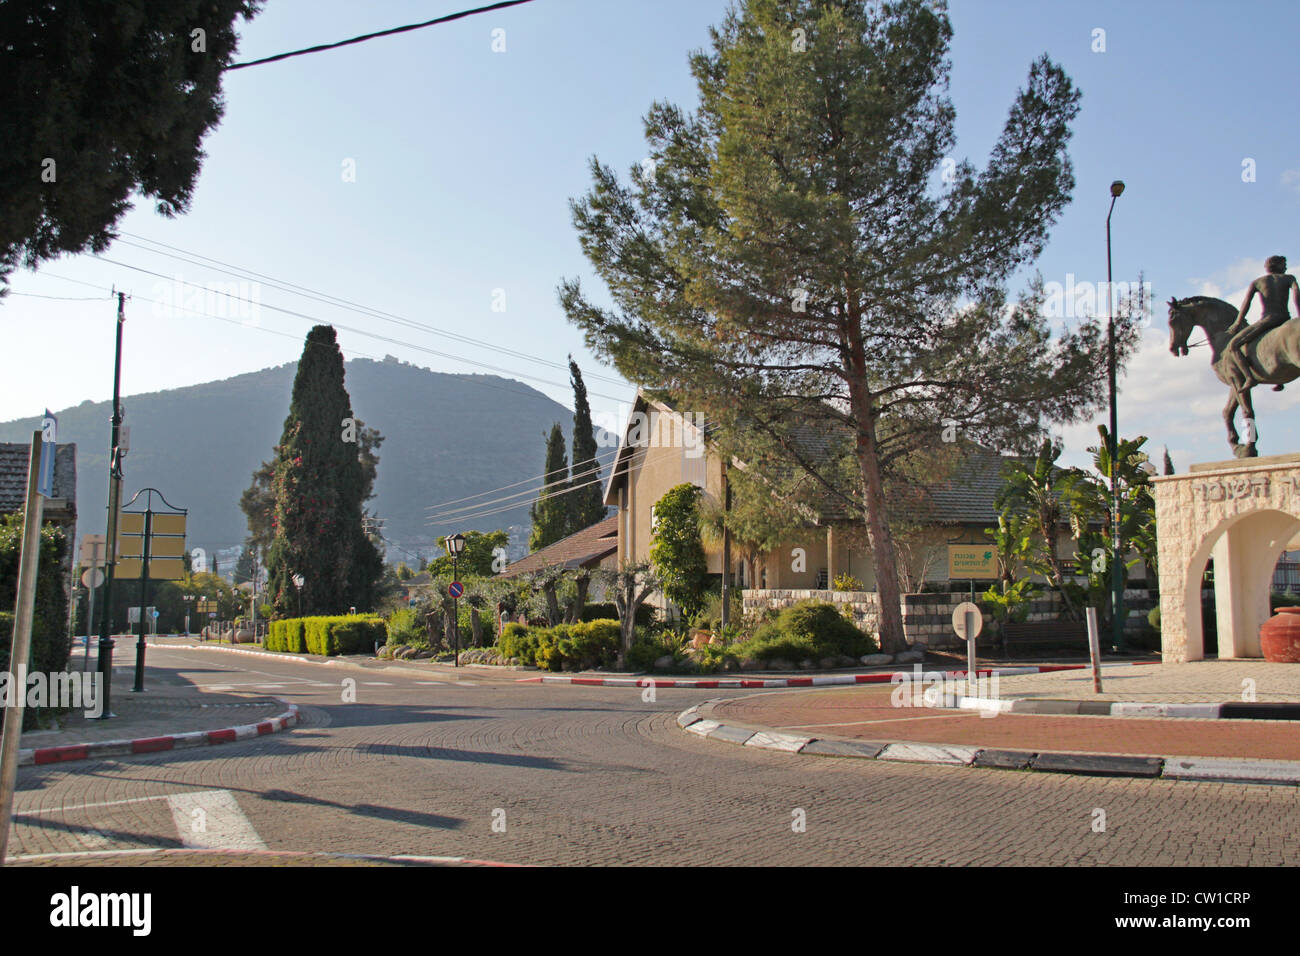 Kfar Tavor in Yezreel Valley and Tabor Mountain( Transfiguration), Israel. - Stock Image